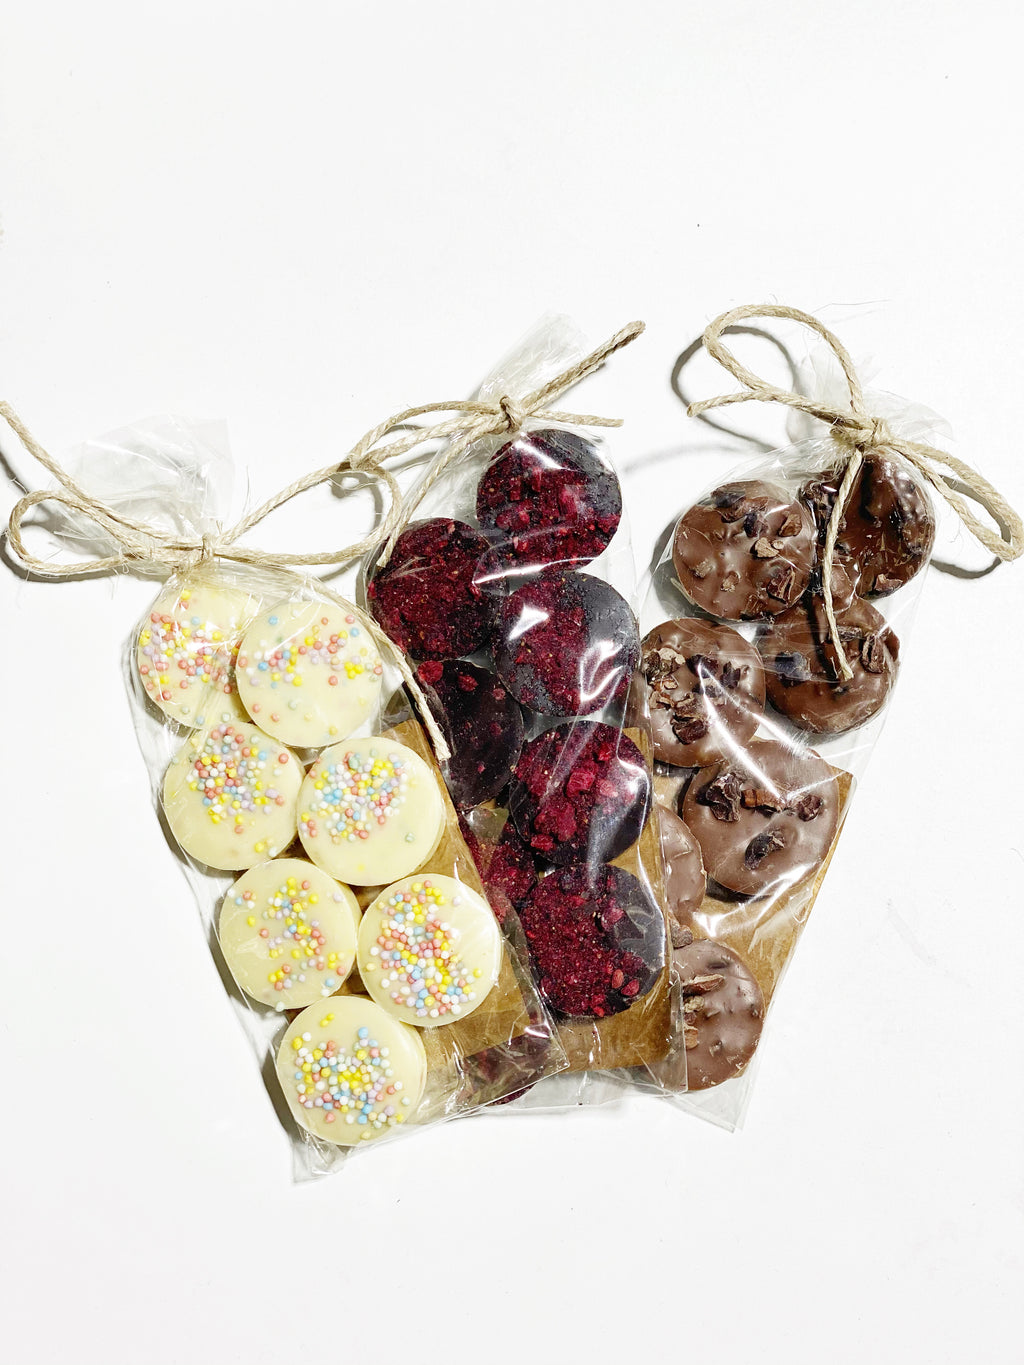 Monsieur Truffe - Handmade Chocolates